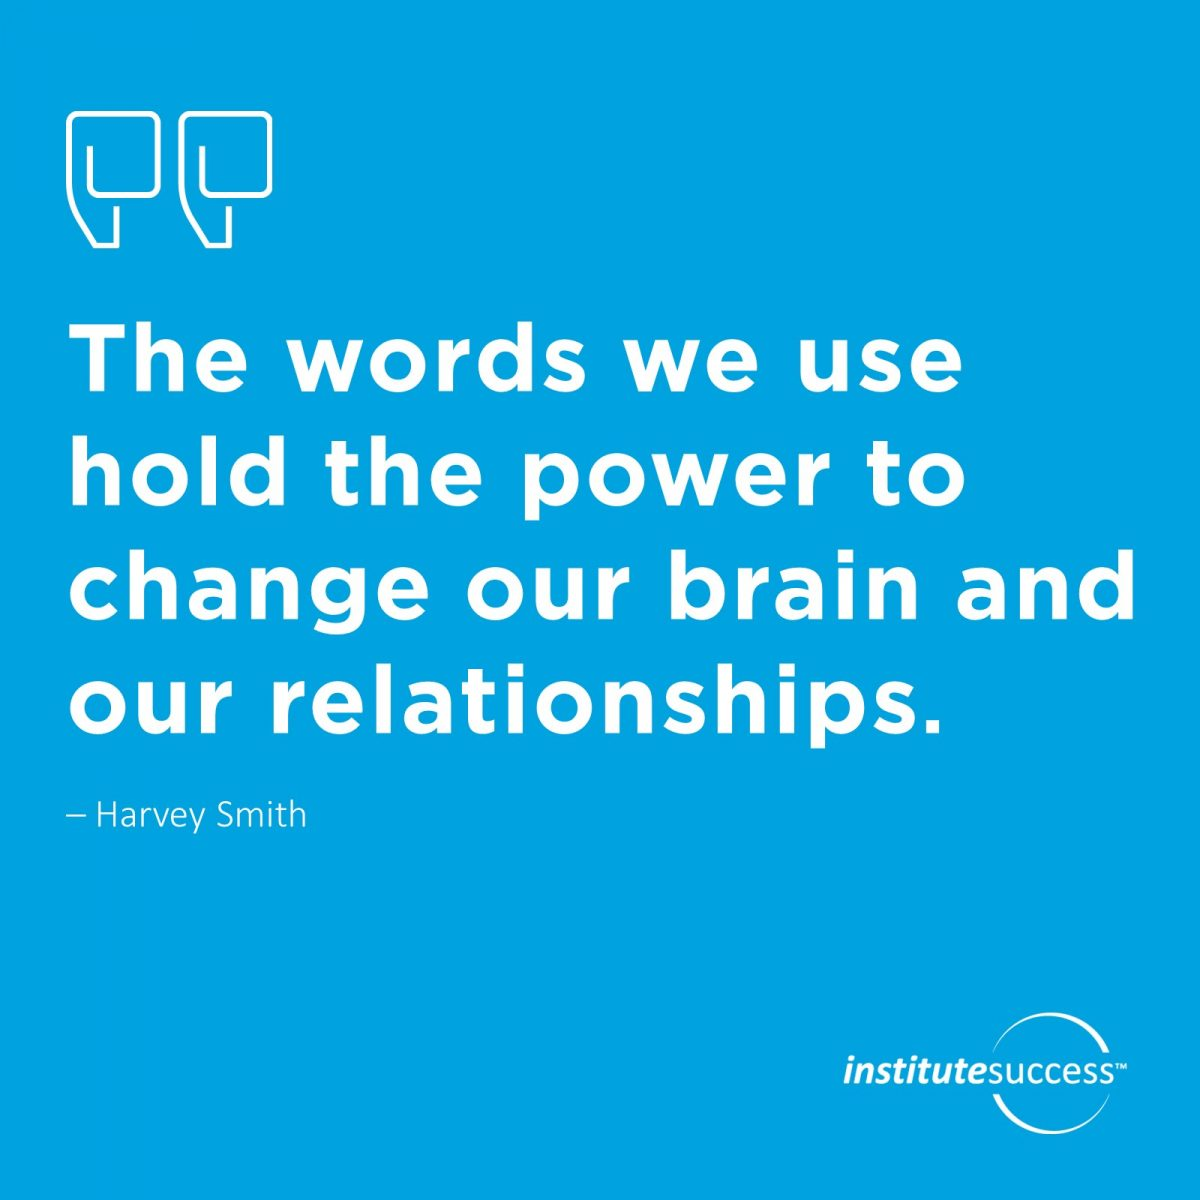 The words we use hold the power to change our brain and our relationships. – Harvey Smith